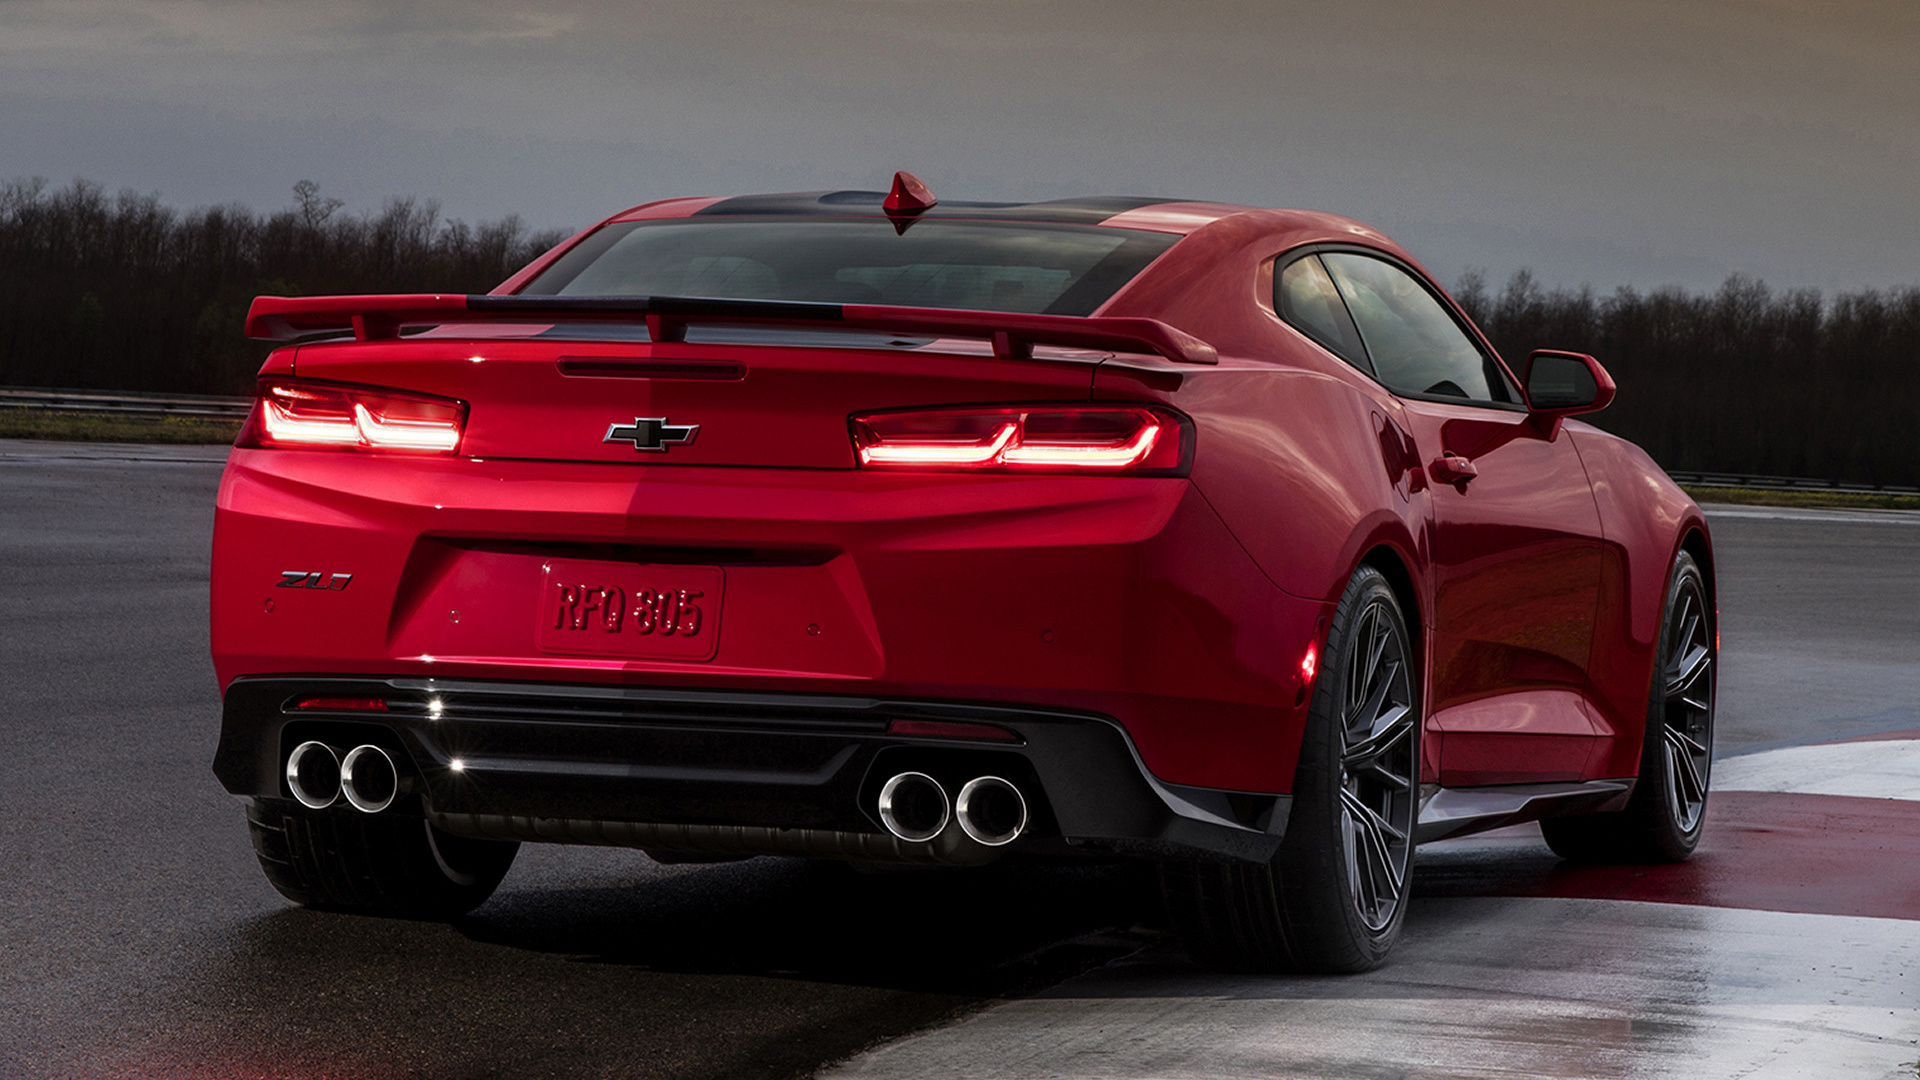 2017 Chevrolet Camaro Zl1 Wallpapers And Hd Images Car